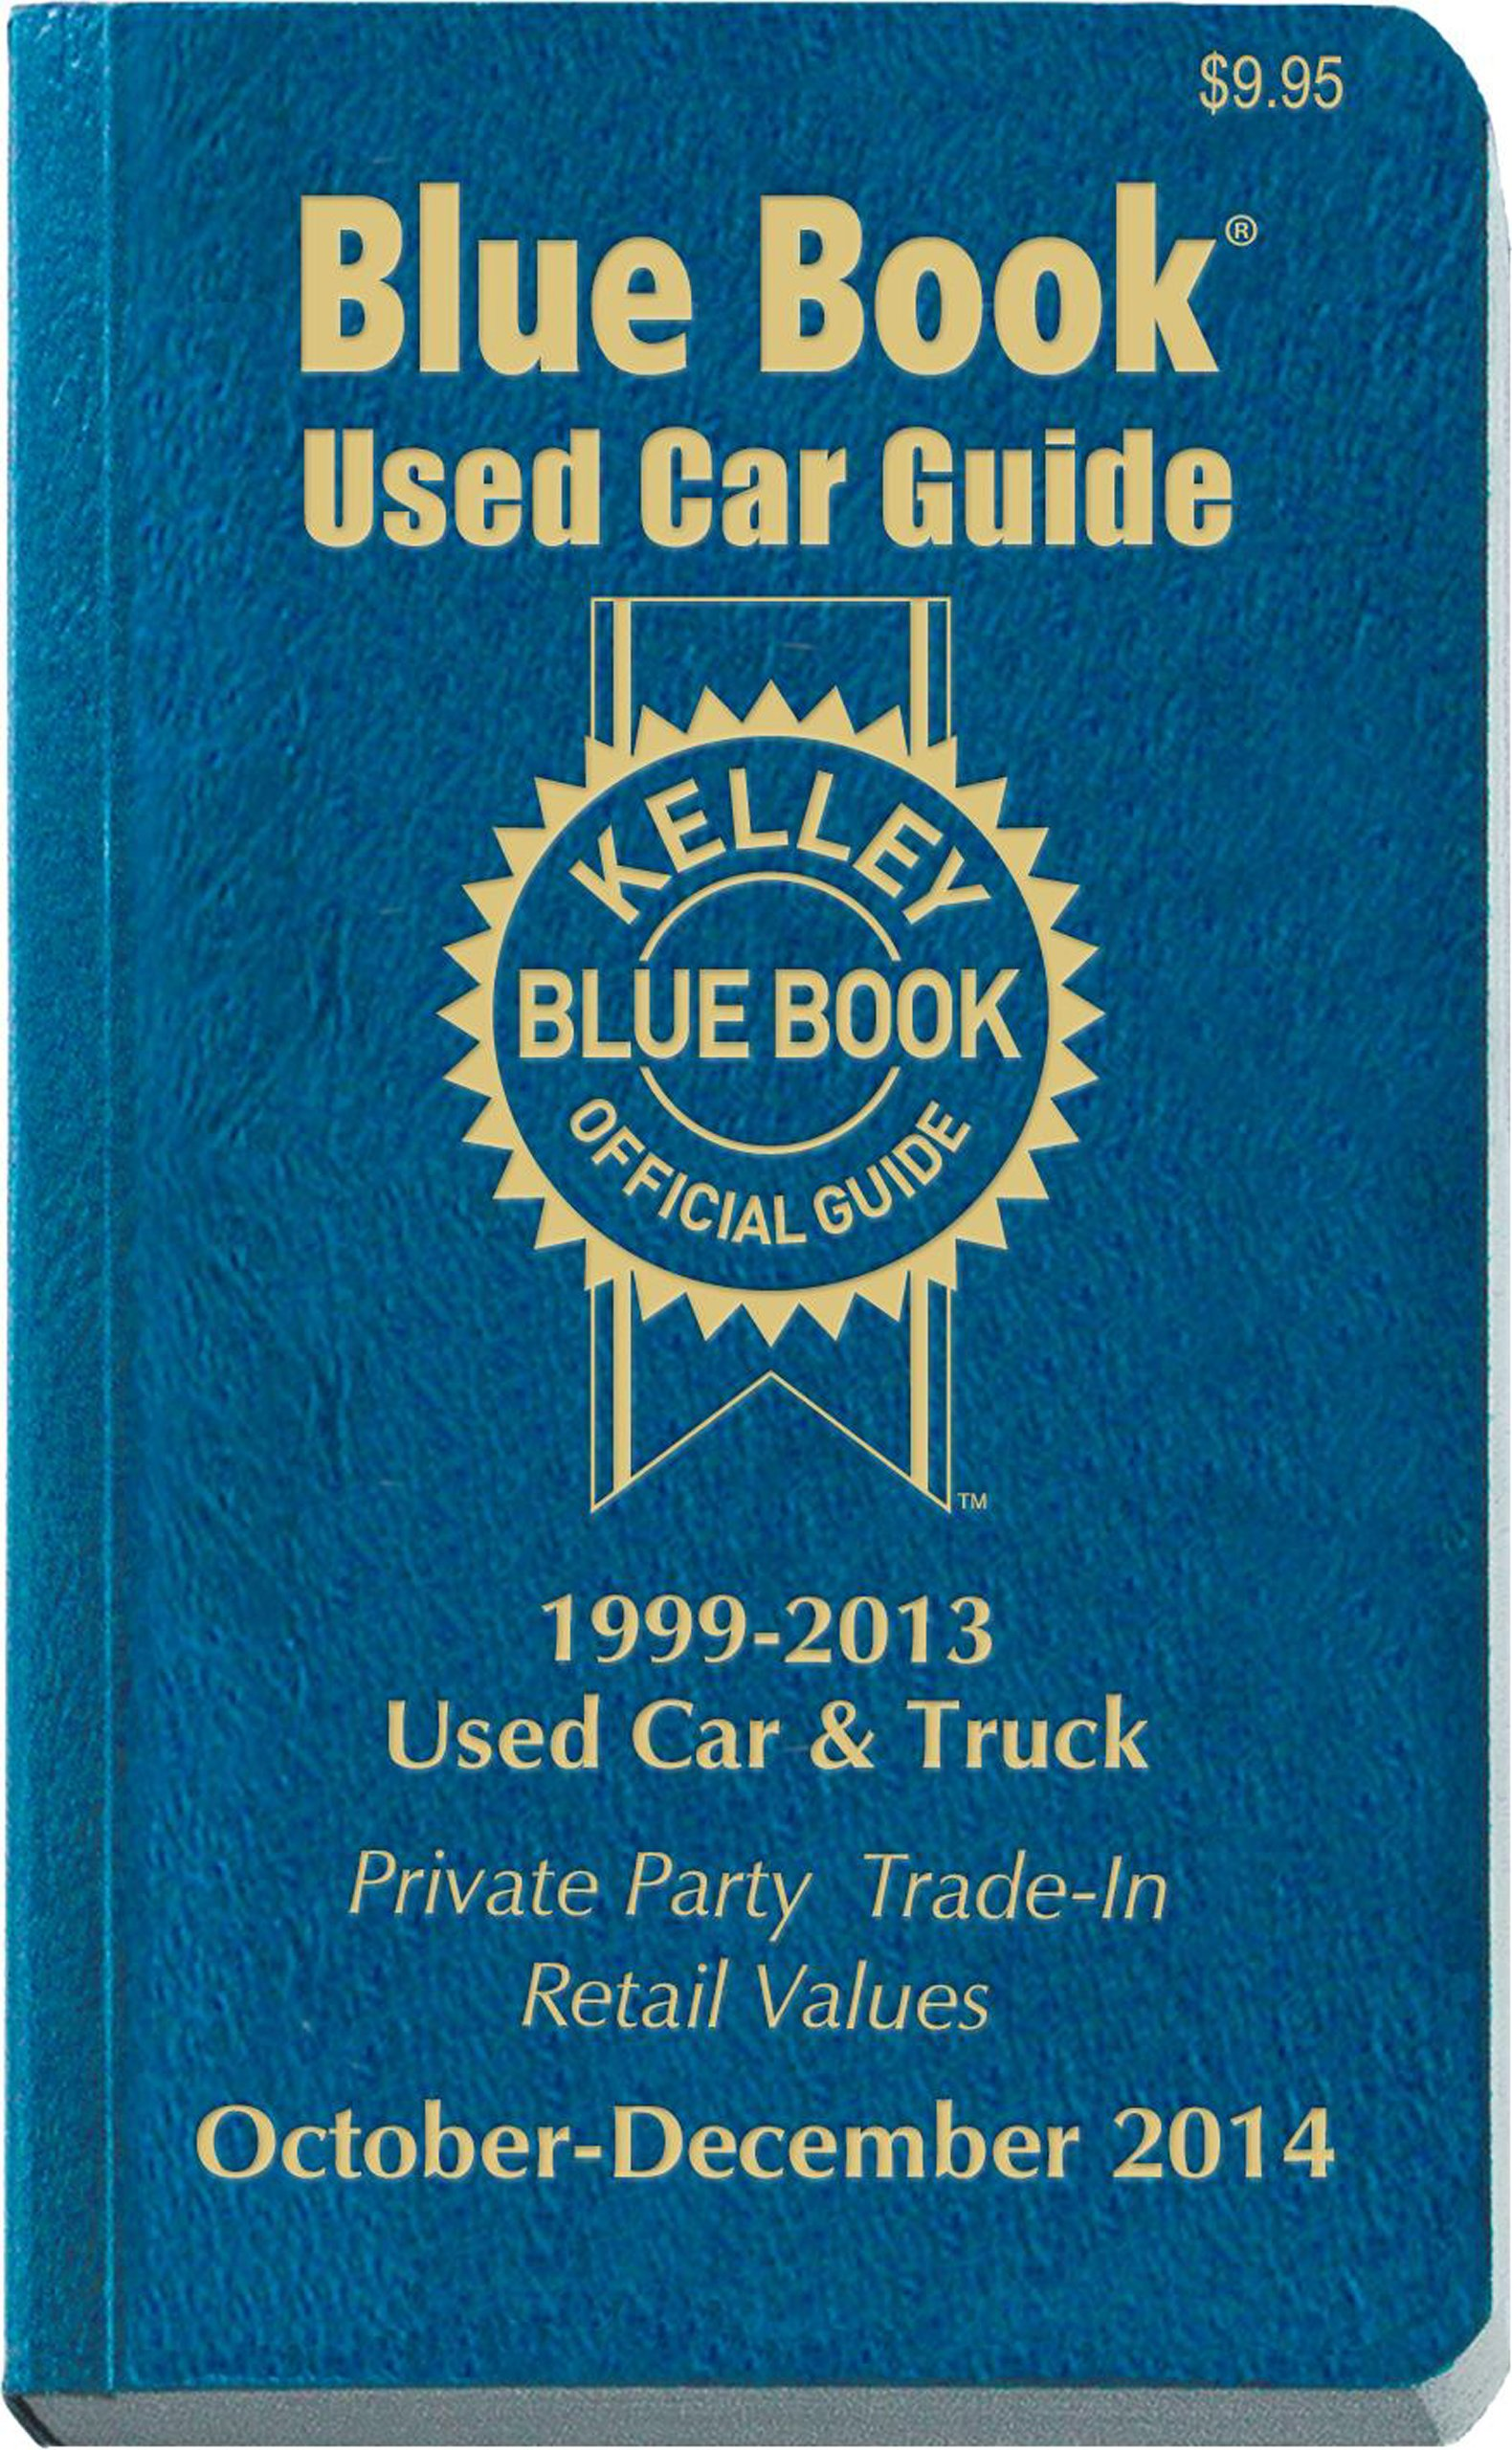 kelley blue book used car guide consumer edition october december 2014 kelley blue book books